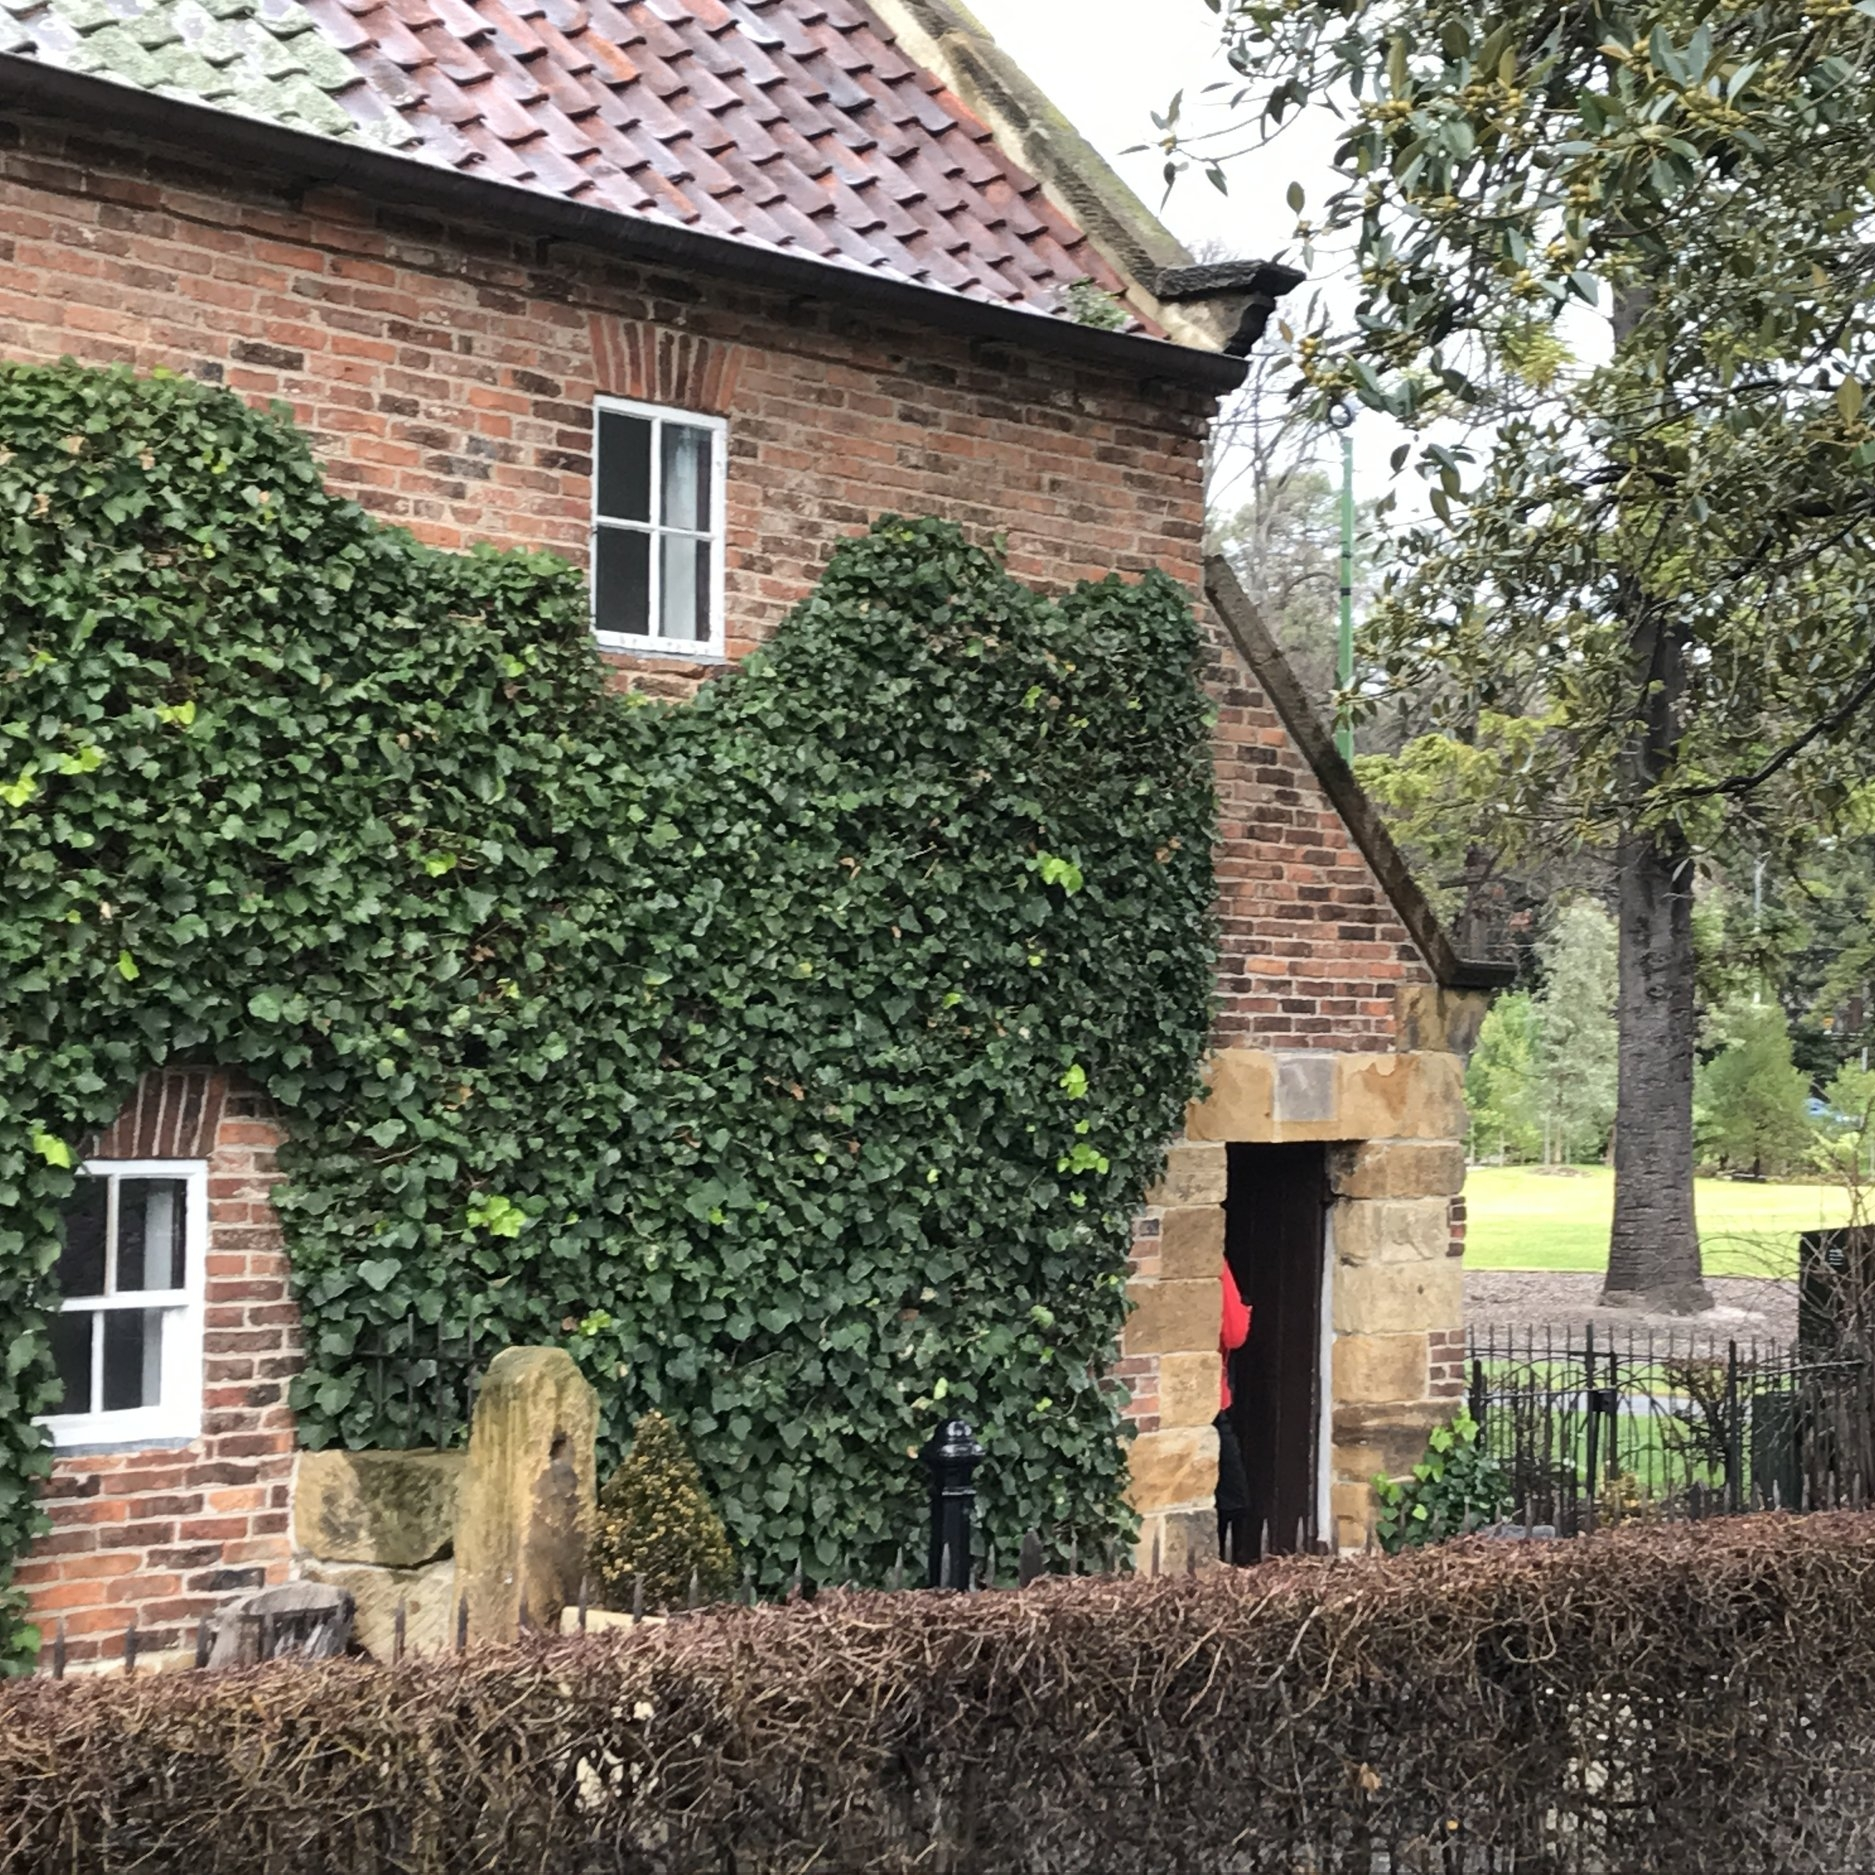 Cooks' Cottage Melbourne by The Doubtful Traveller